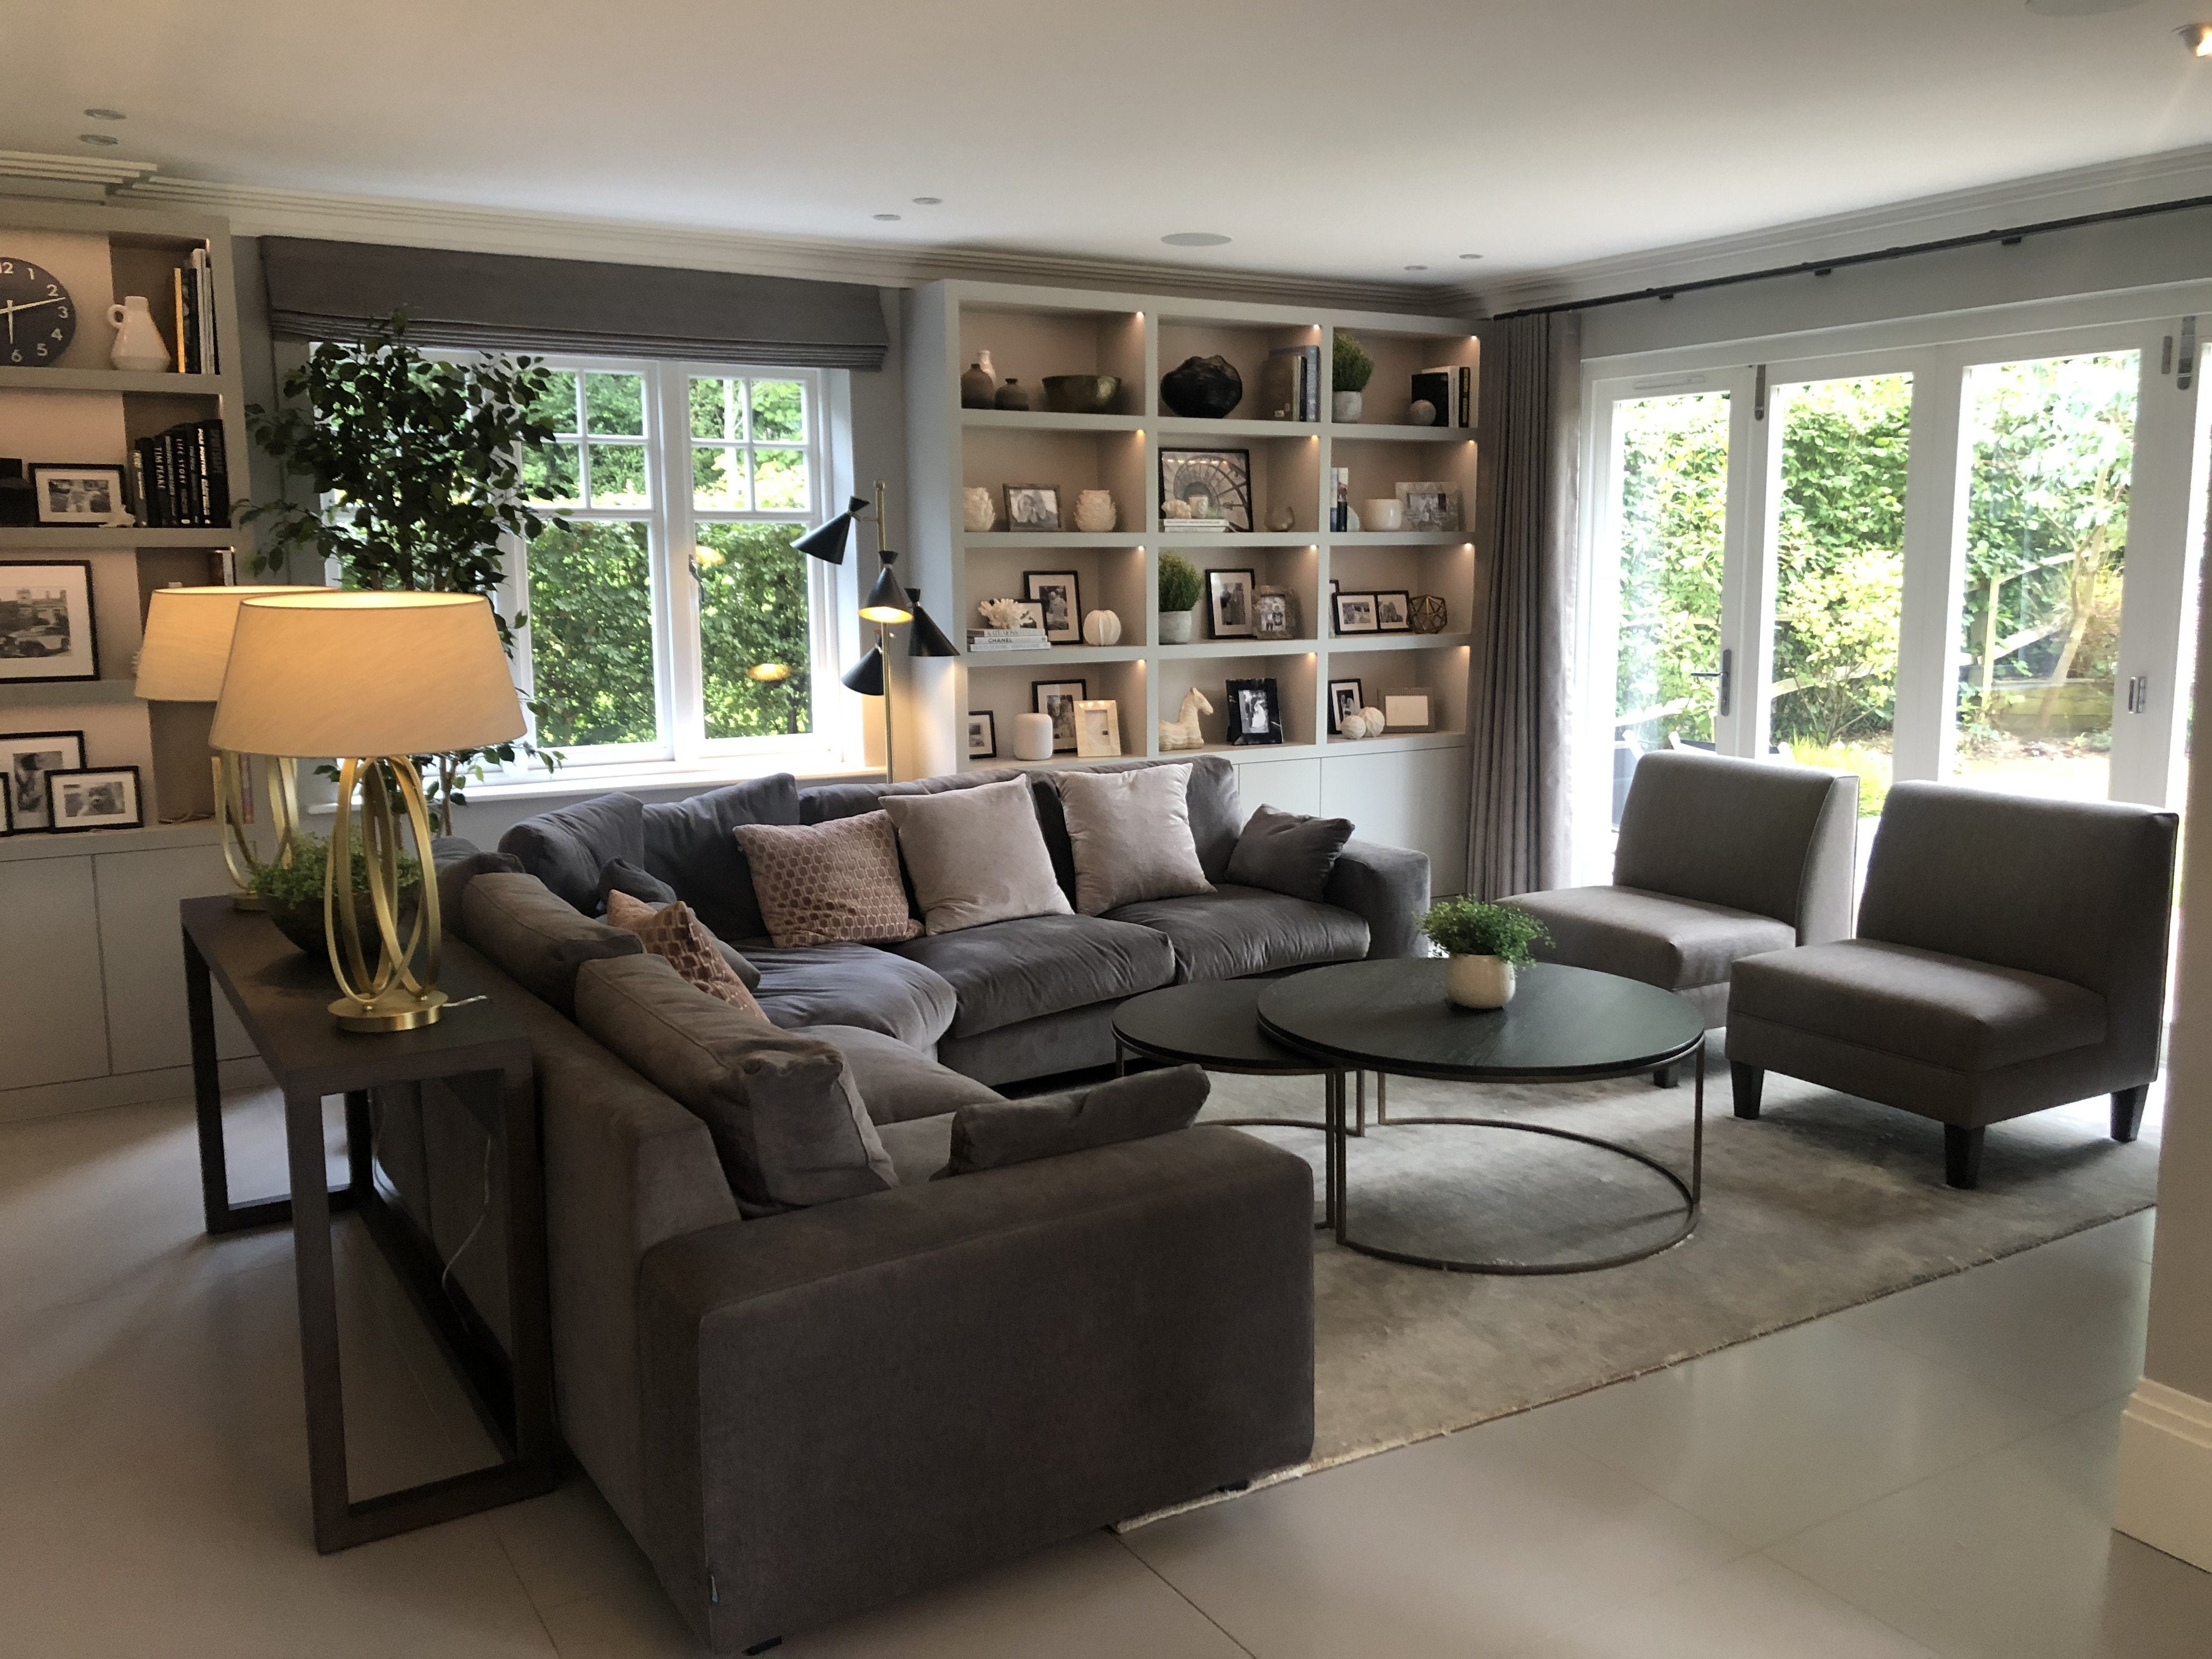 French Grey walls and bespoke cabinets, dark grey sofa, mint rug, pink armchairs, putty curtains and blind, bronze lamps and fittings